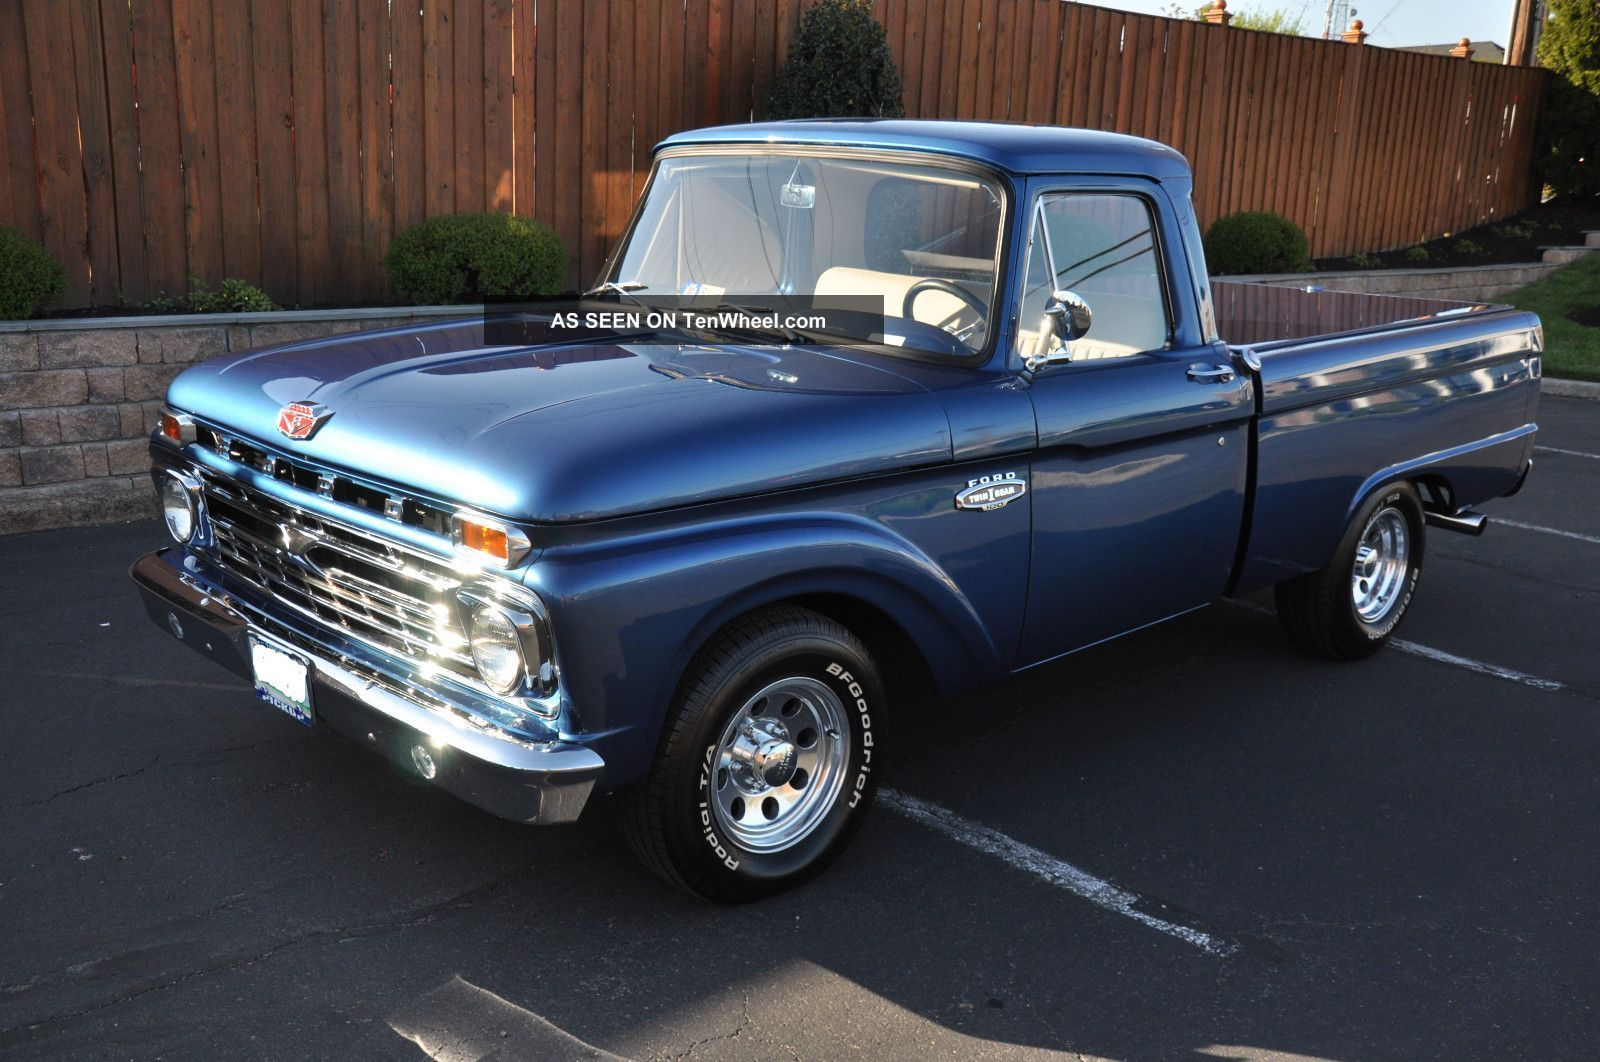 medium resolution of 1966 classic ford f 150 trucks hot rod ford 1966 f100 truck f 100 photo